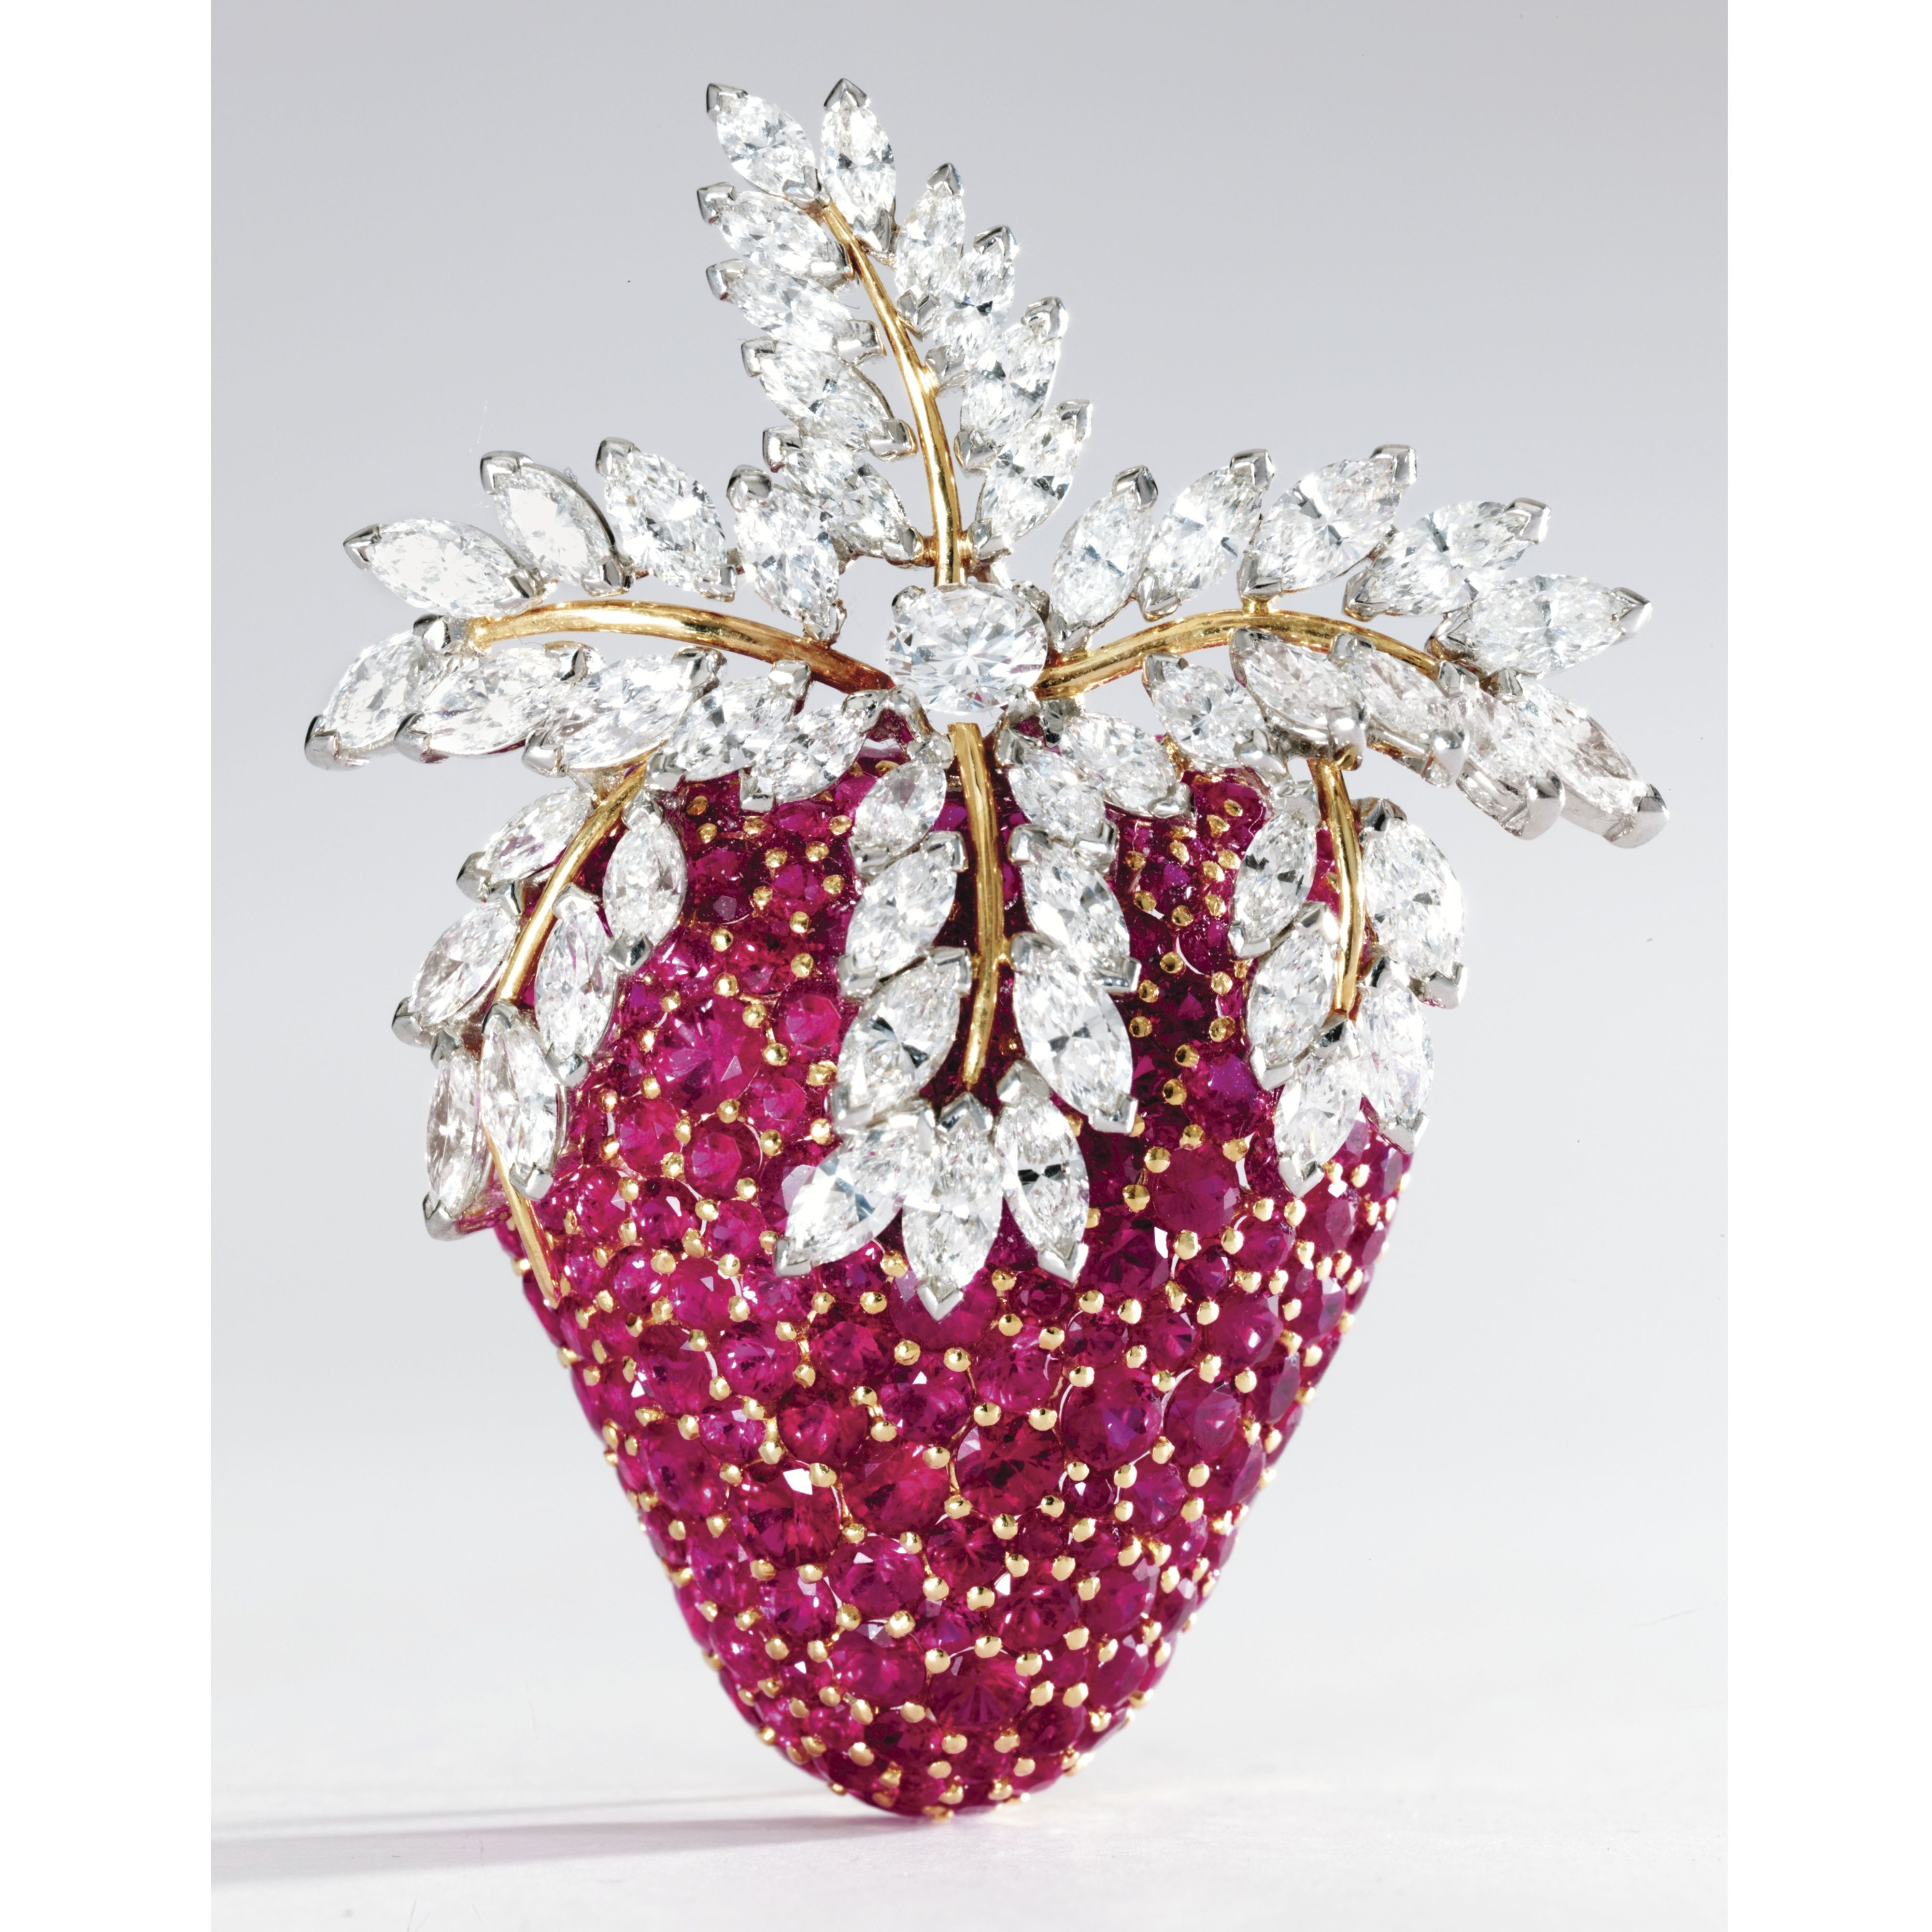 18 KARAT GOLD, PLATINUM, DIAMOND AND RUBY BROOCH, SCHLUMBERGER FOR TIFFANY & CO., FRANCE The strawberry set with round rubies, the leaves set with round and marquise-shaped diamonds weighing approximately 7.00 carats, signed Tiffany & Co., Schlumberger, France, French assay and maker's marks, one ruby missing